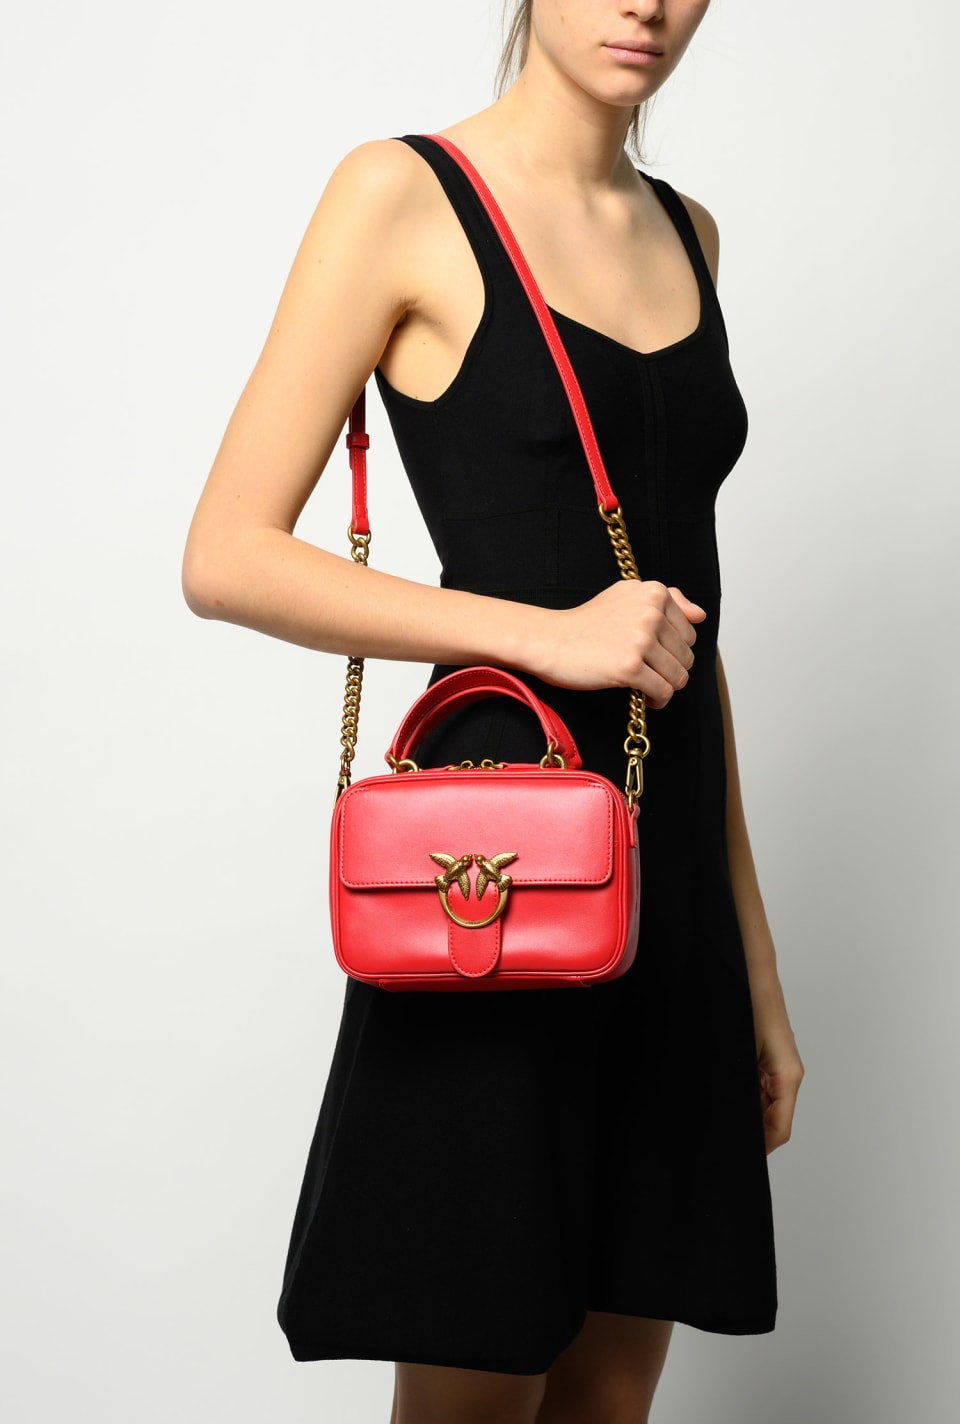 Mini Square Bag Simply - Pinko